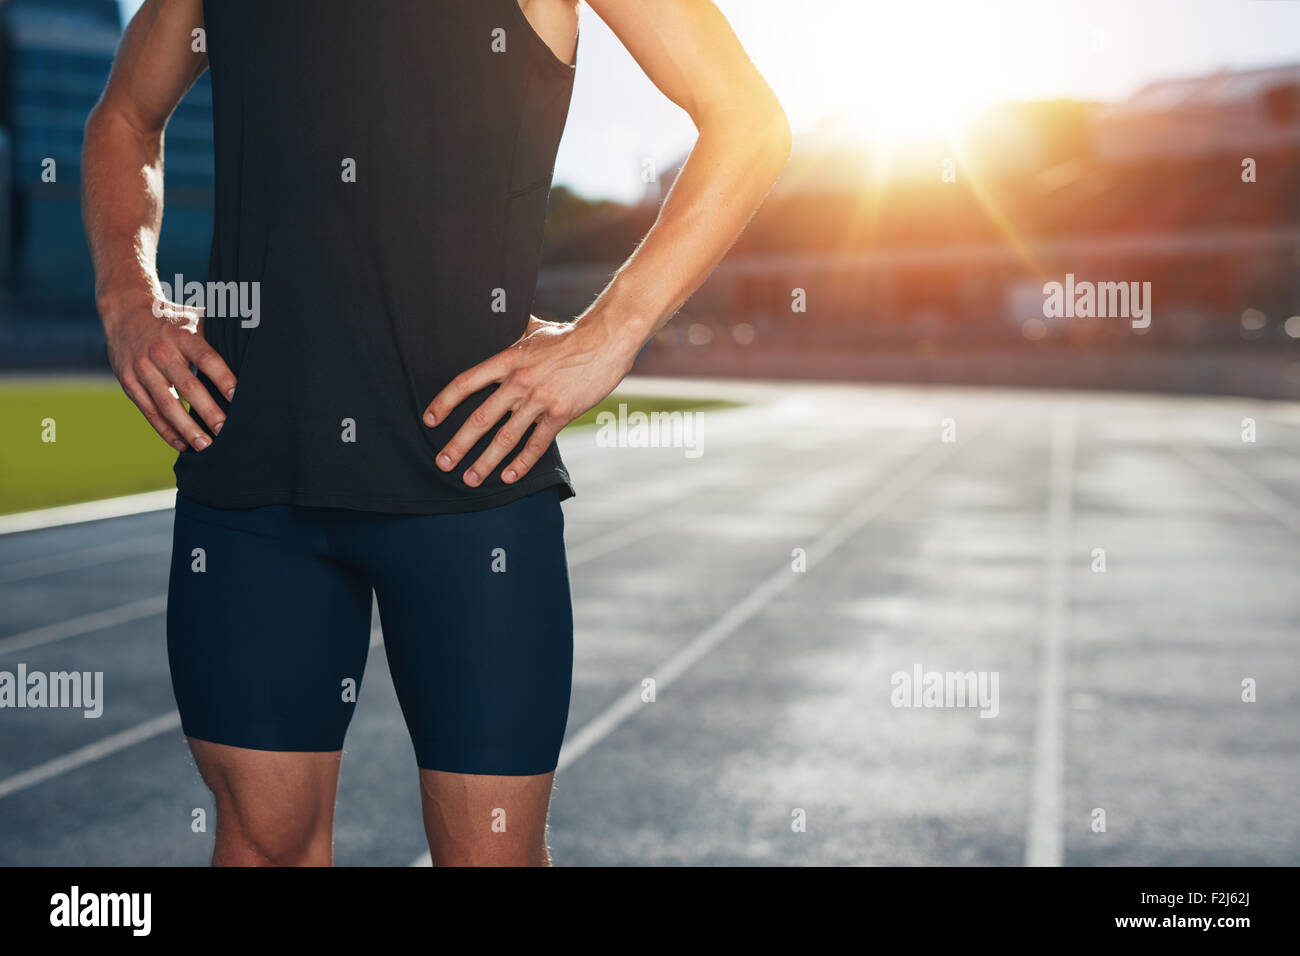 Mid section shot of male athlete standing on race track with his hands on hips on a bright sunlight. Cropped shot - Stock Image